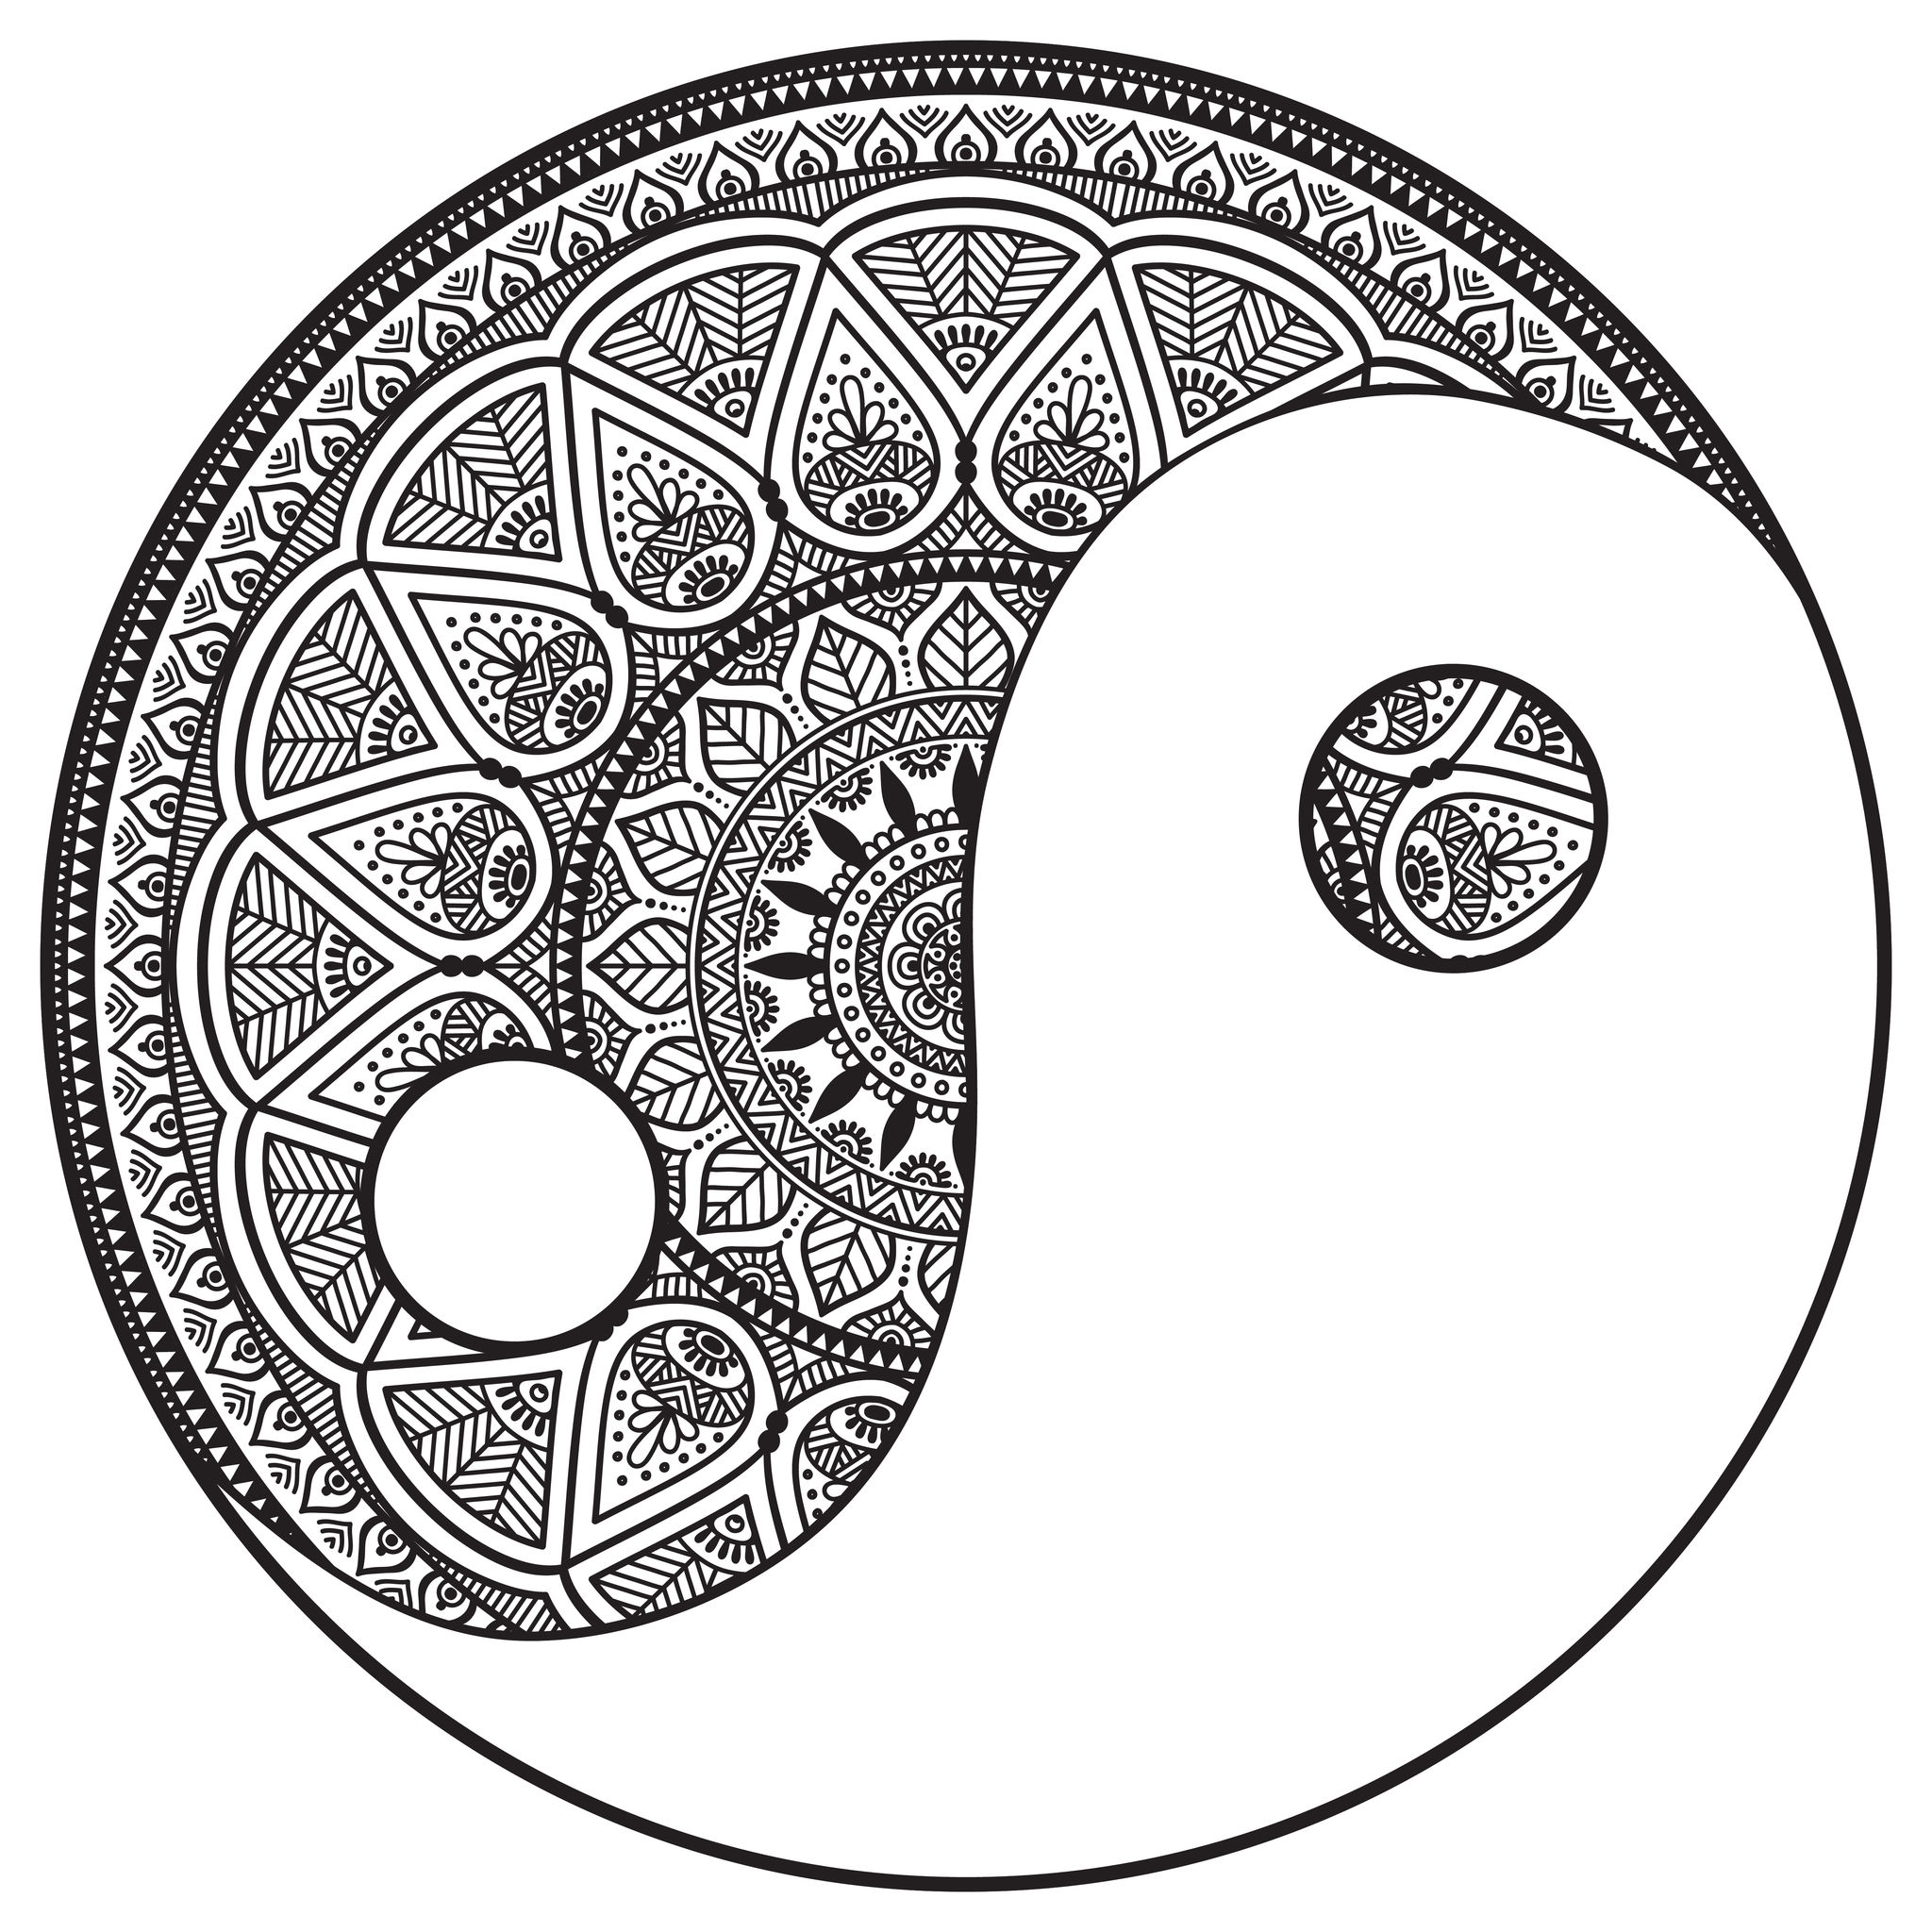 yin and yang mandala from the gallery mandalas artist snezh